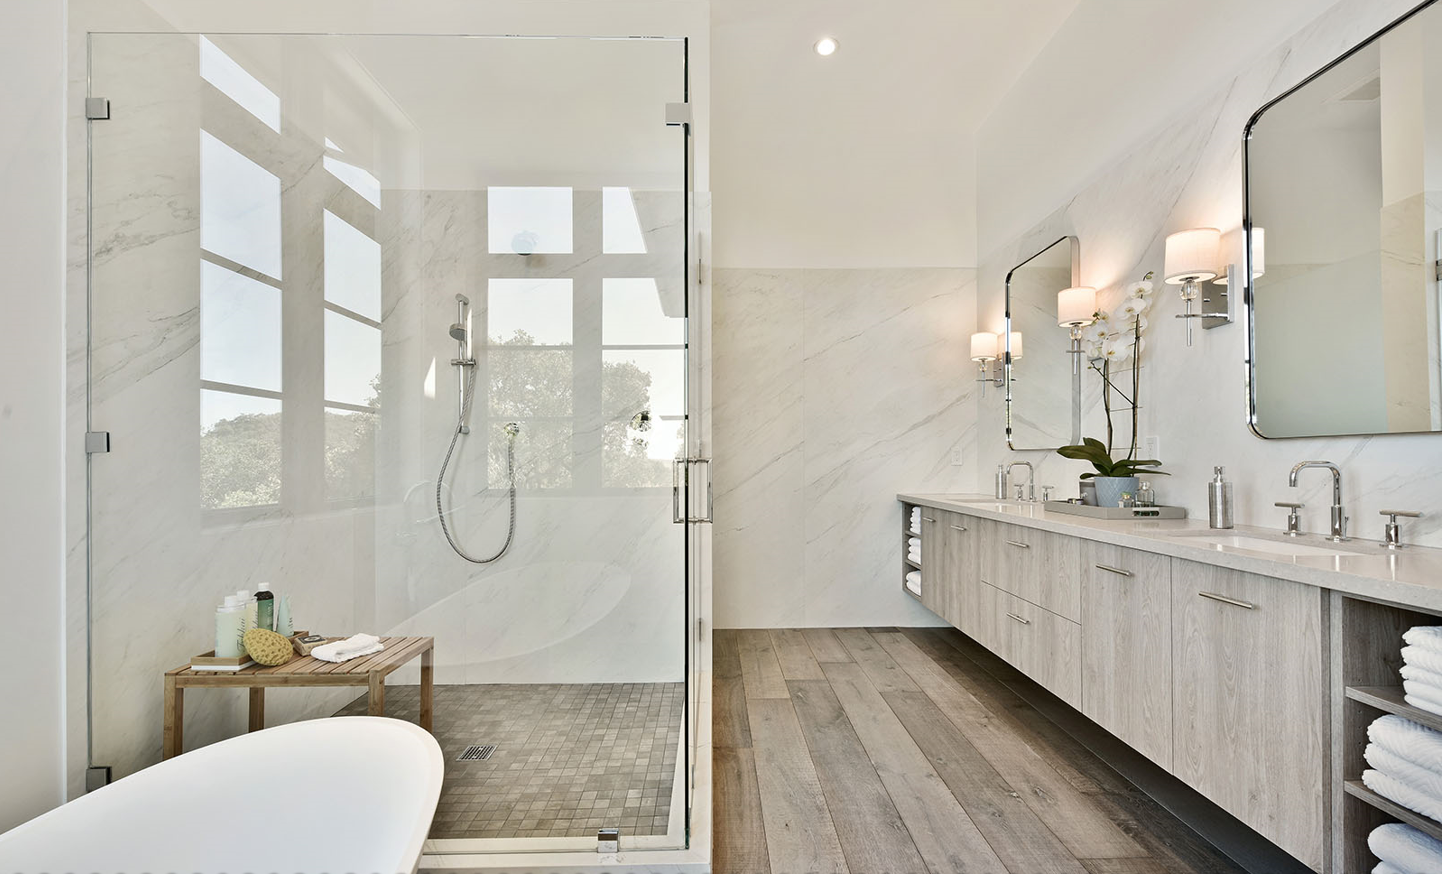 Contemporary Bathrooms7 Images